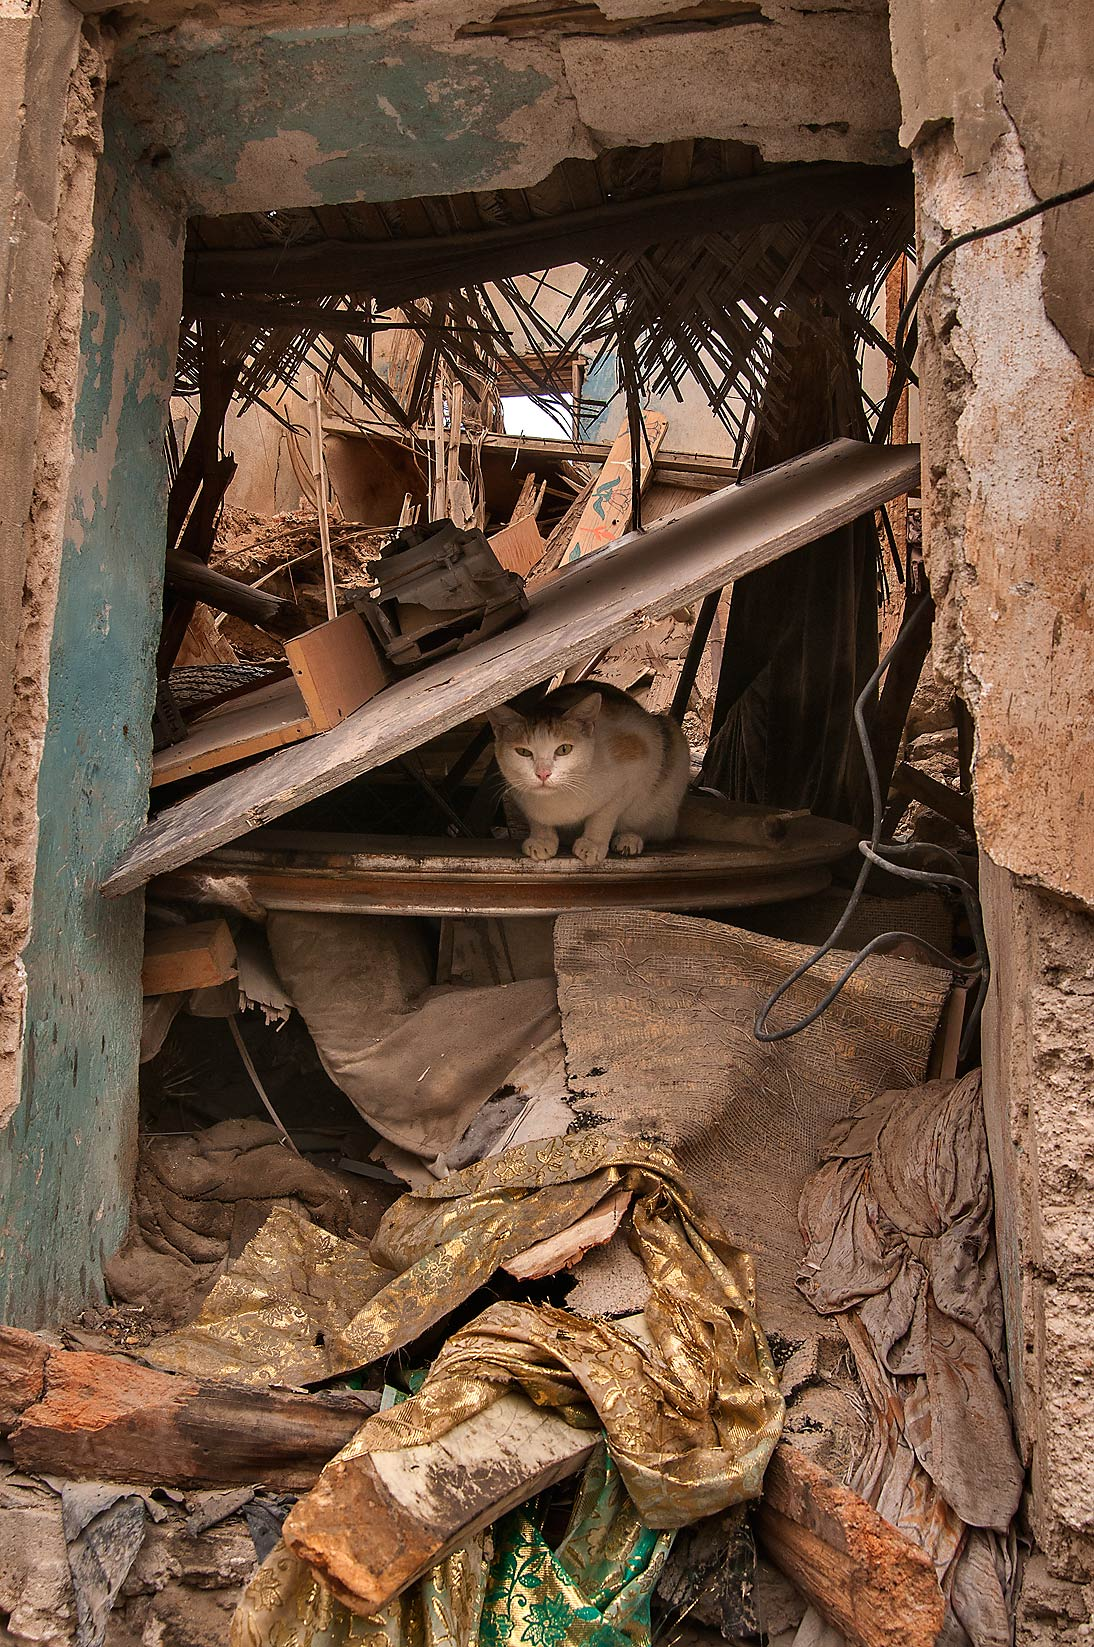 Cat hiding under rubble in doorway on Umm Wishah St., Musheirib area. Doha, Qatar